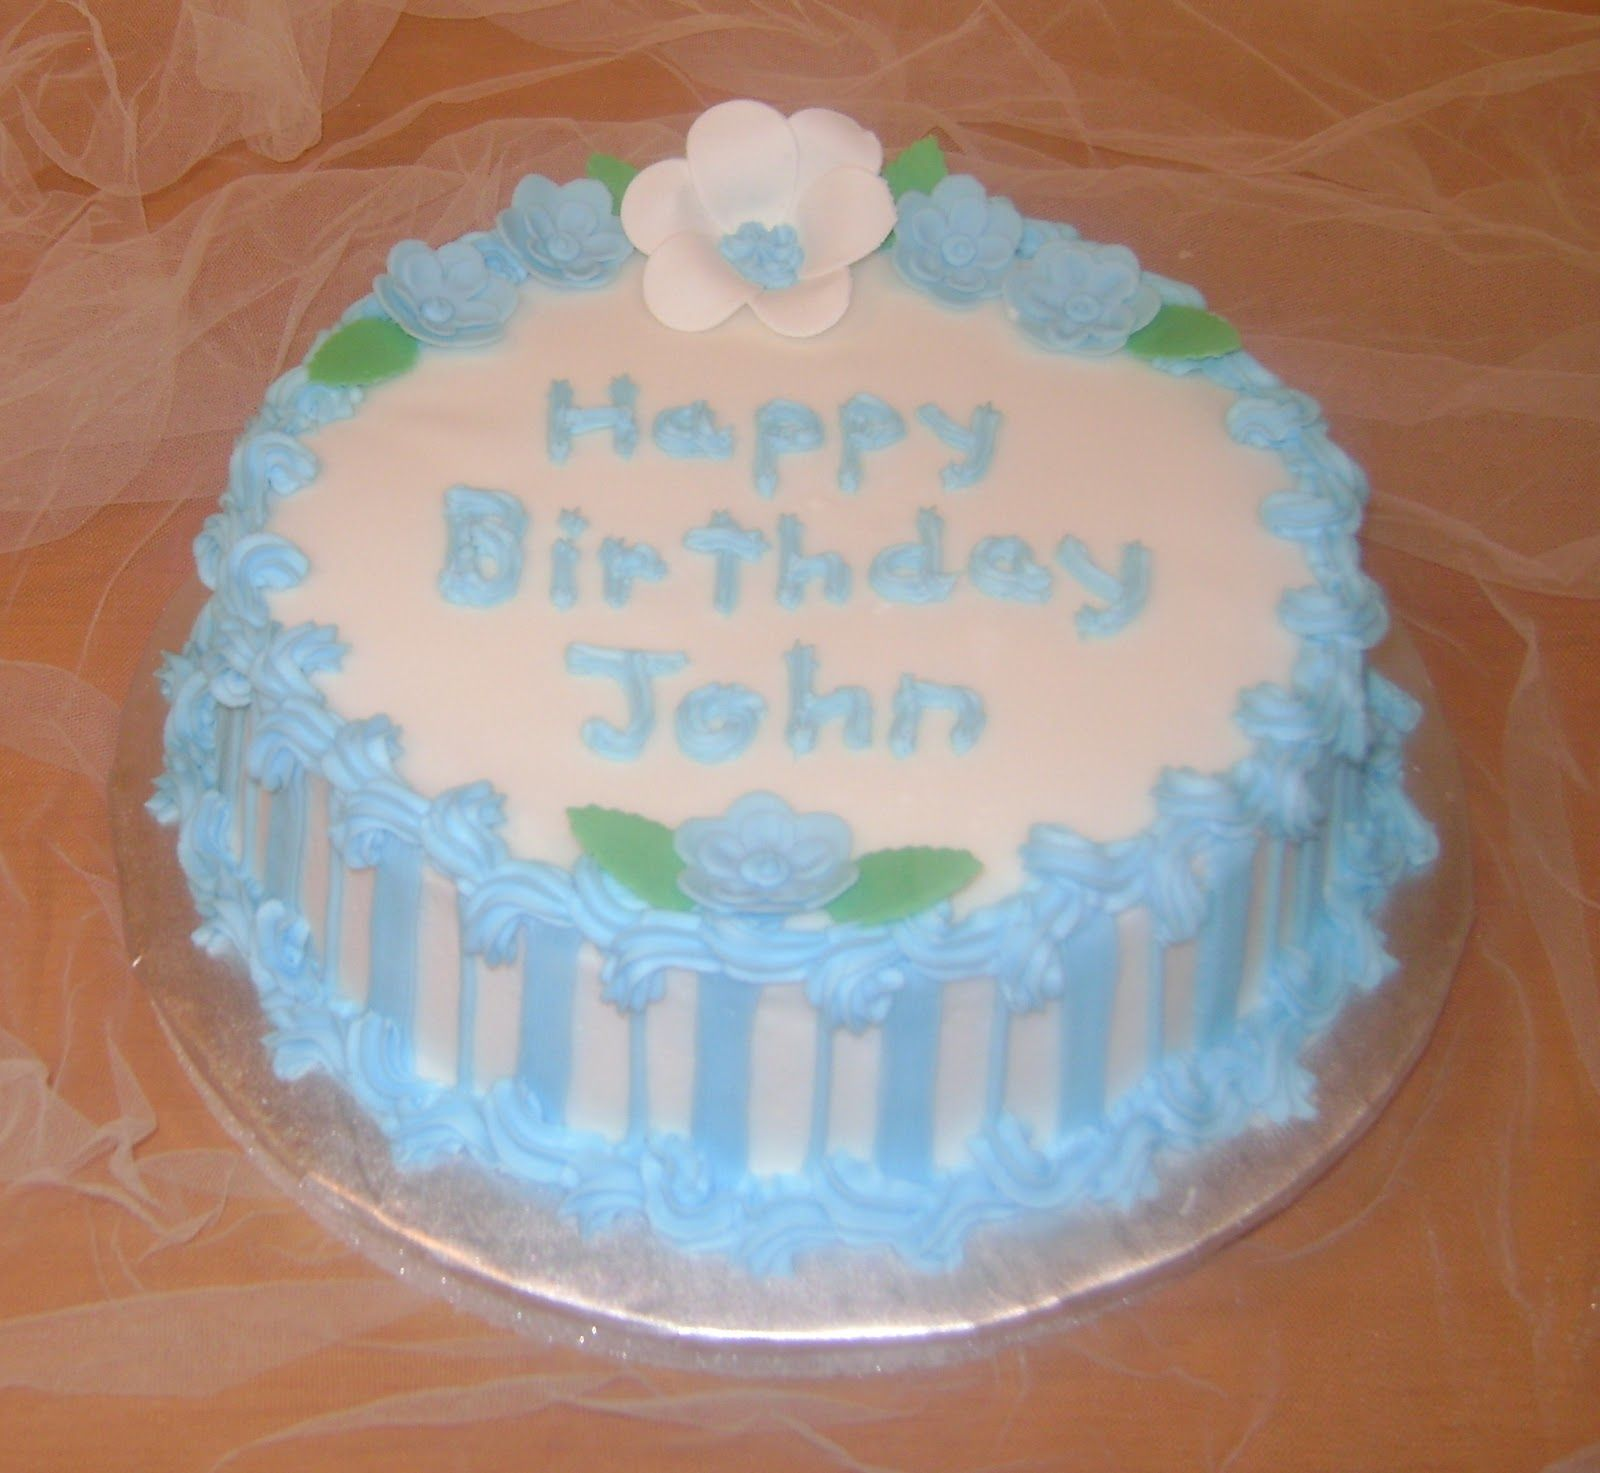 Remarkable Happy Birthday John With Images Happy Birthday John Cake Personalised Birthday Cards Sponlily Jamesorg